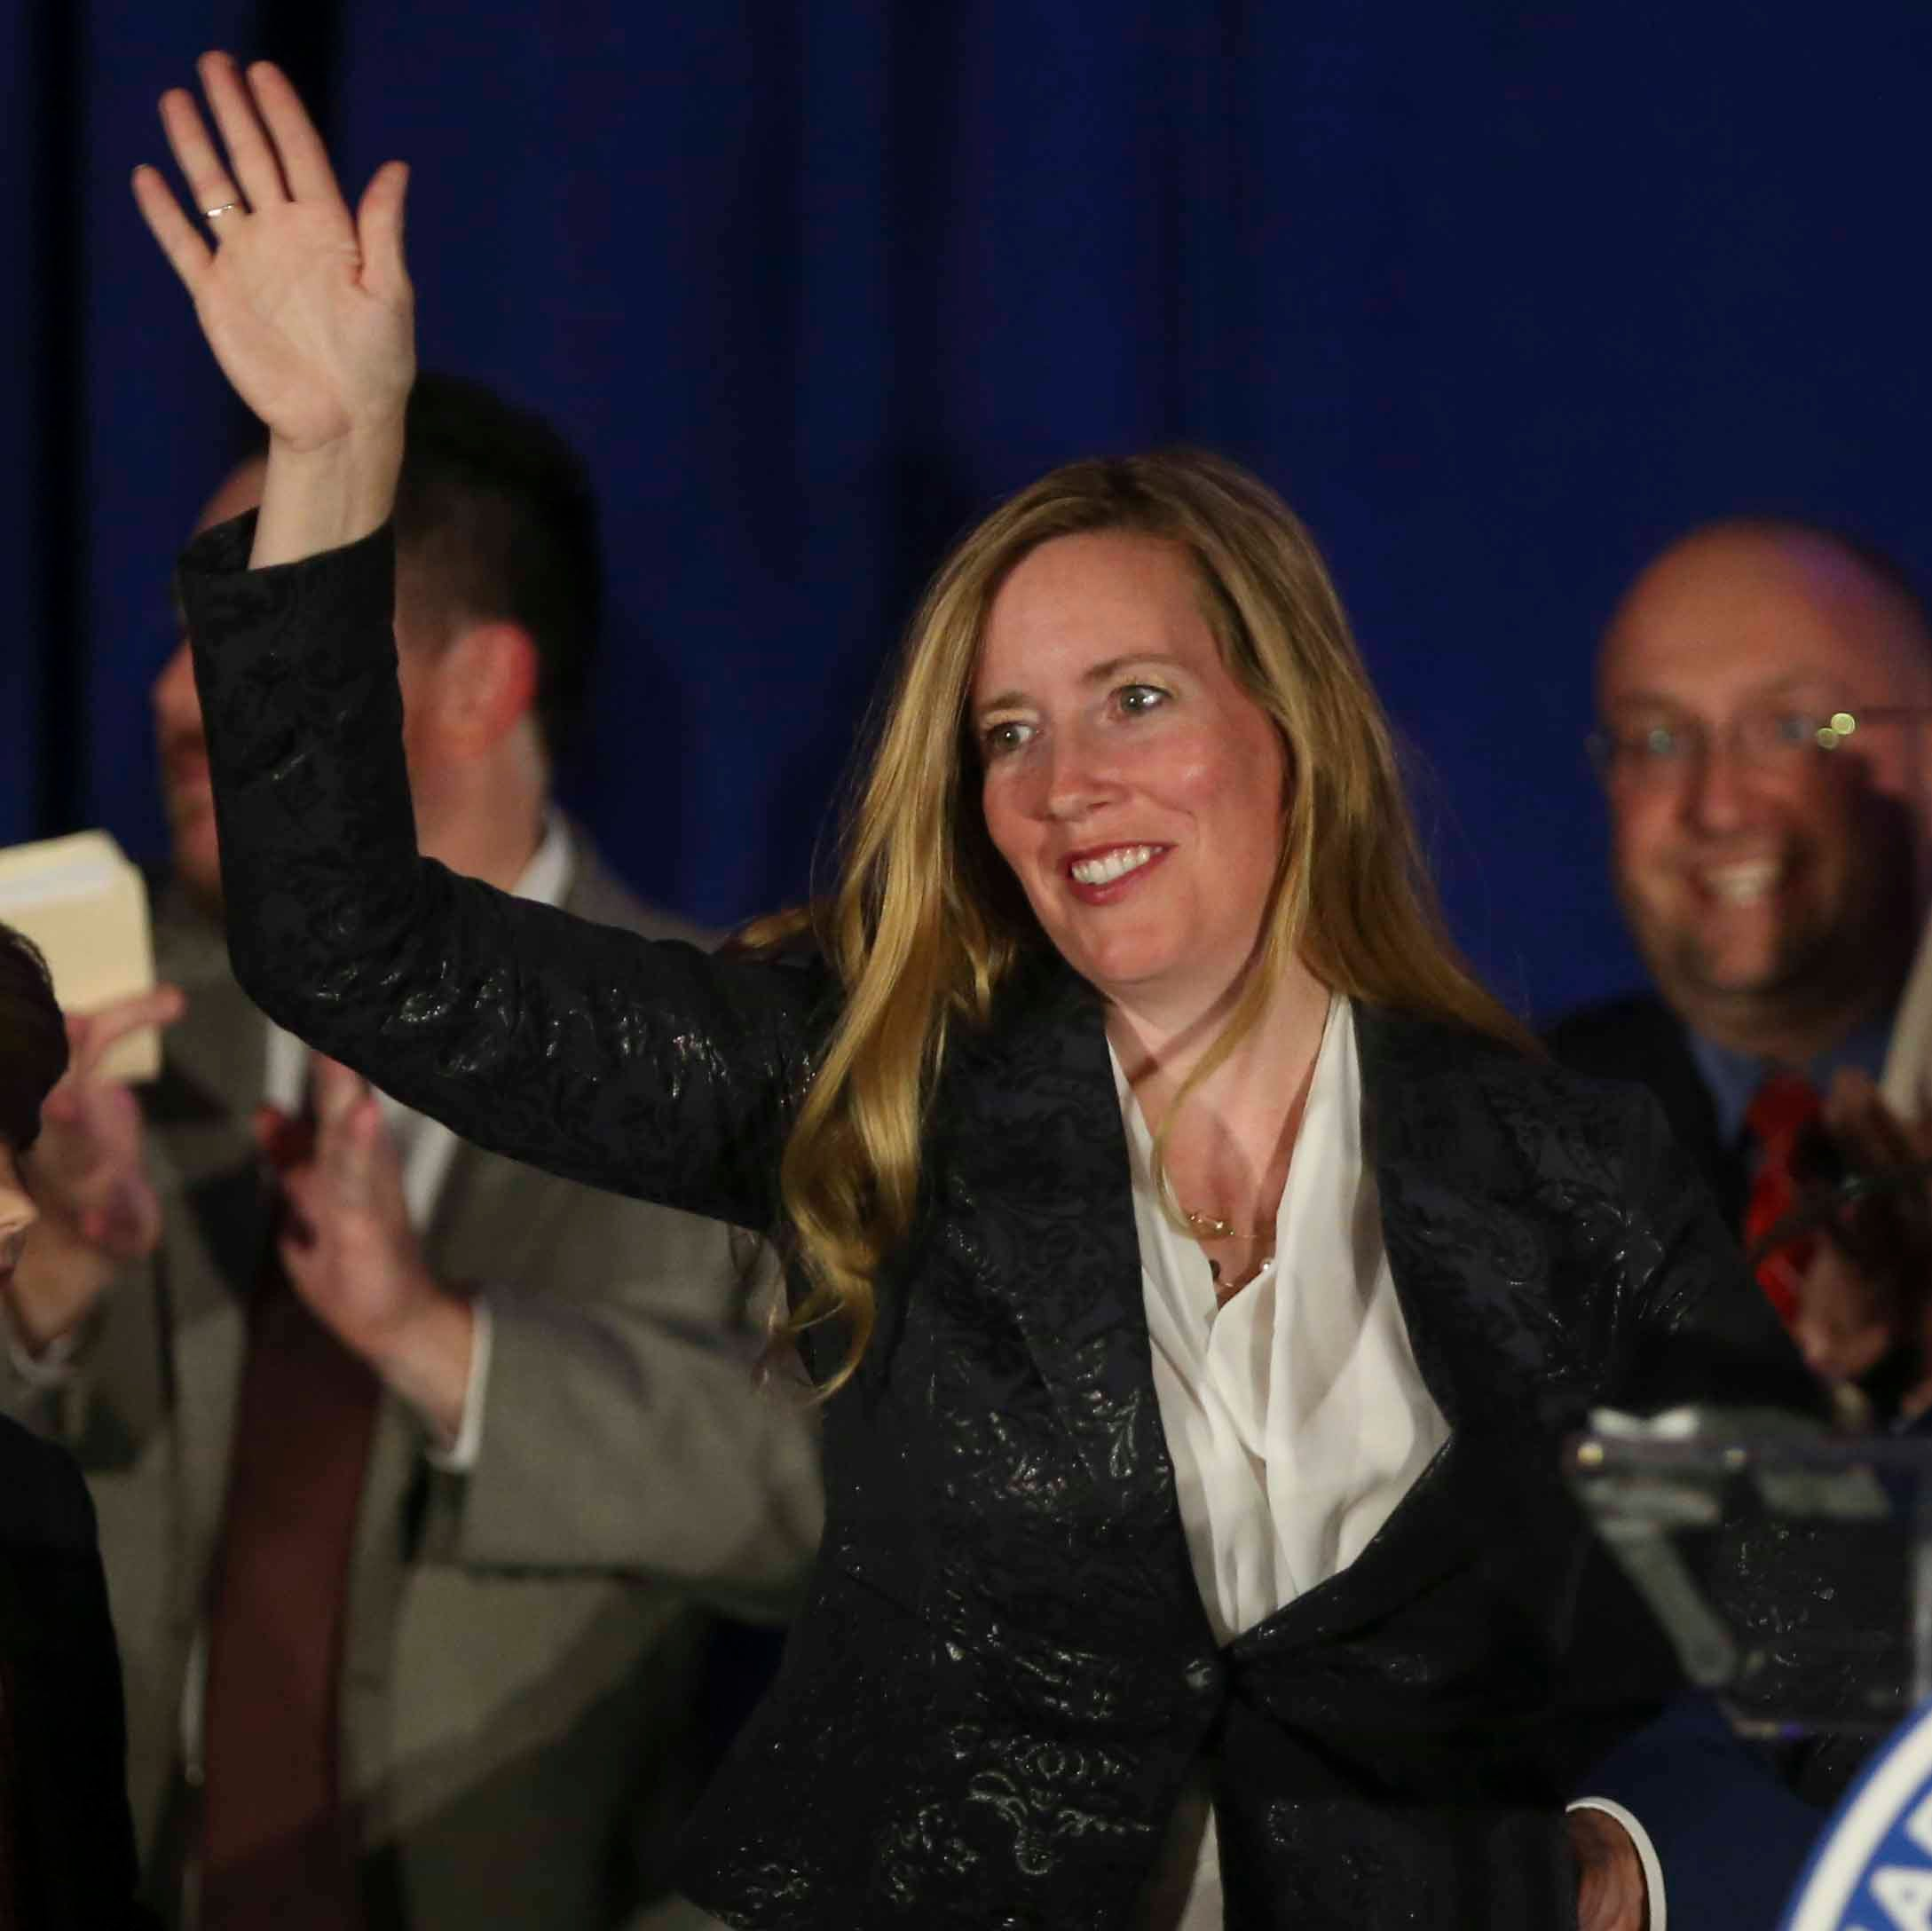 Colleen C. Davis waves to the crowd at the DoubleTree Hotel in Wilmington after winning the state treasurer race  Tuesday.